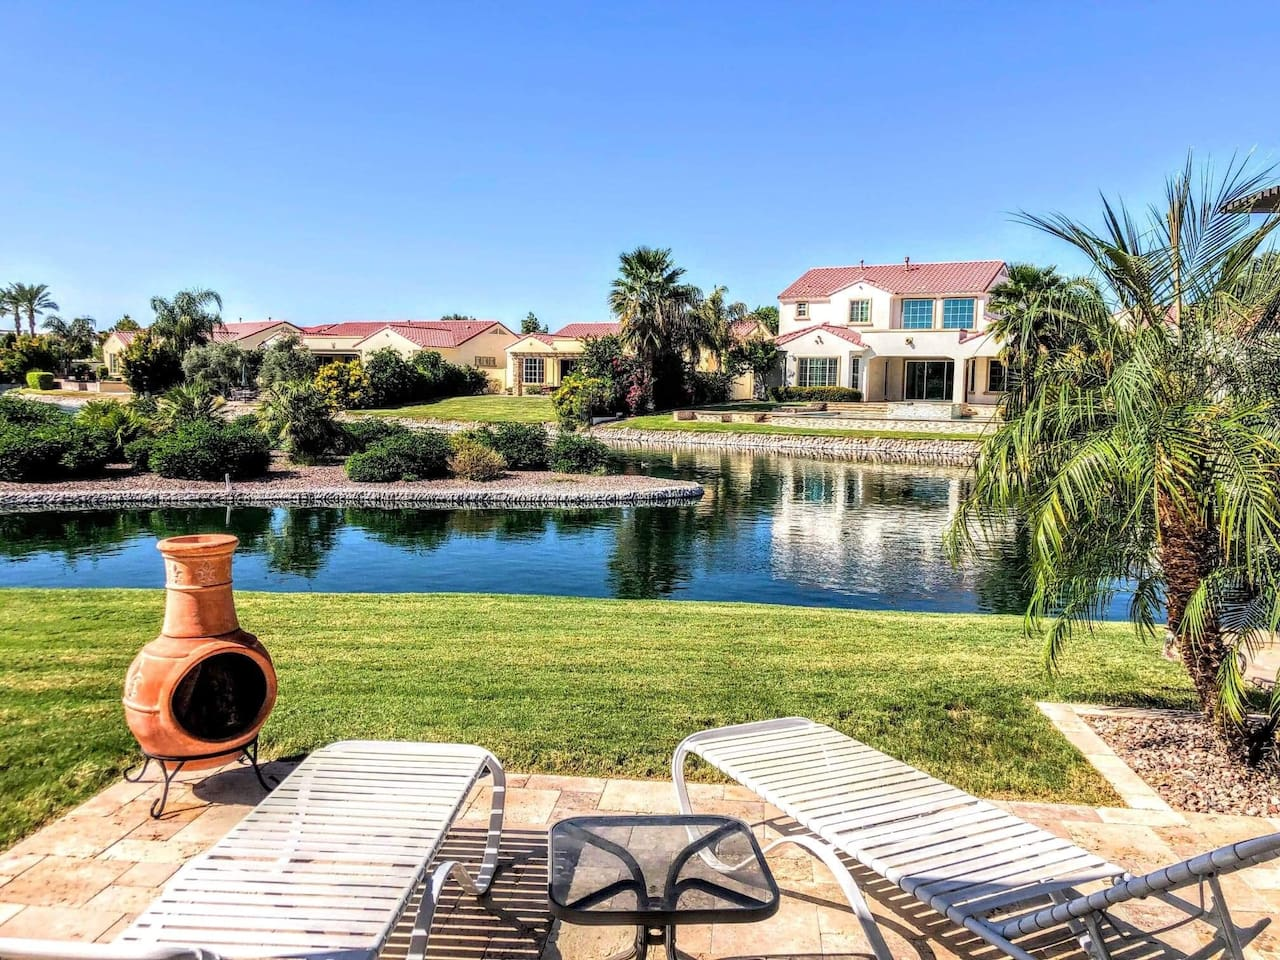 Large back yard with grass, lots of seating, fire pit, all on the water